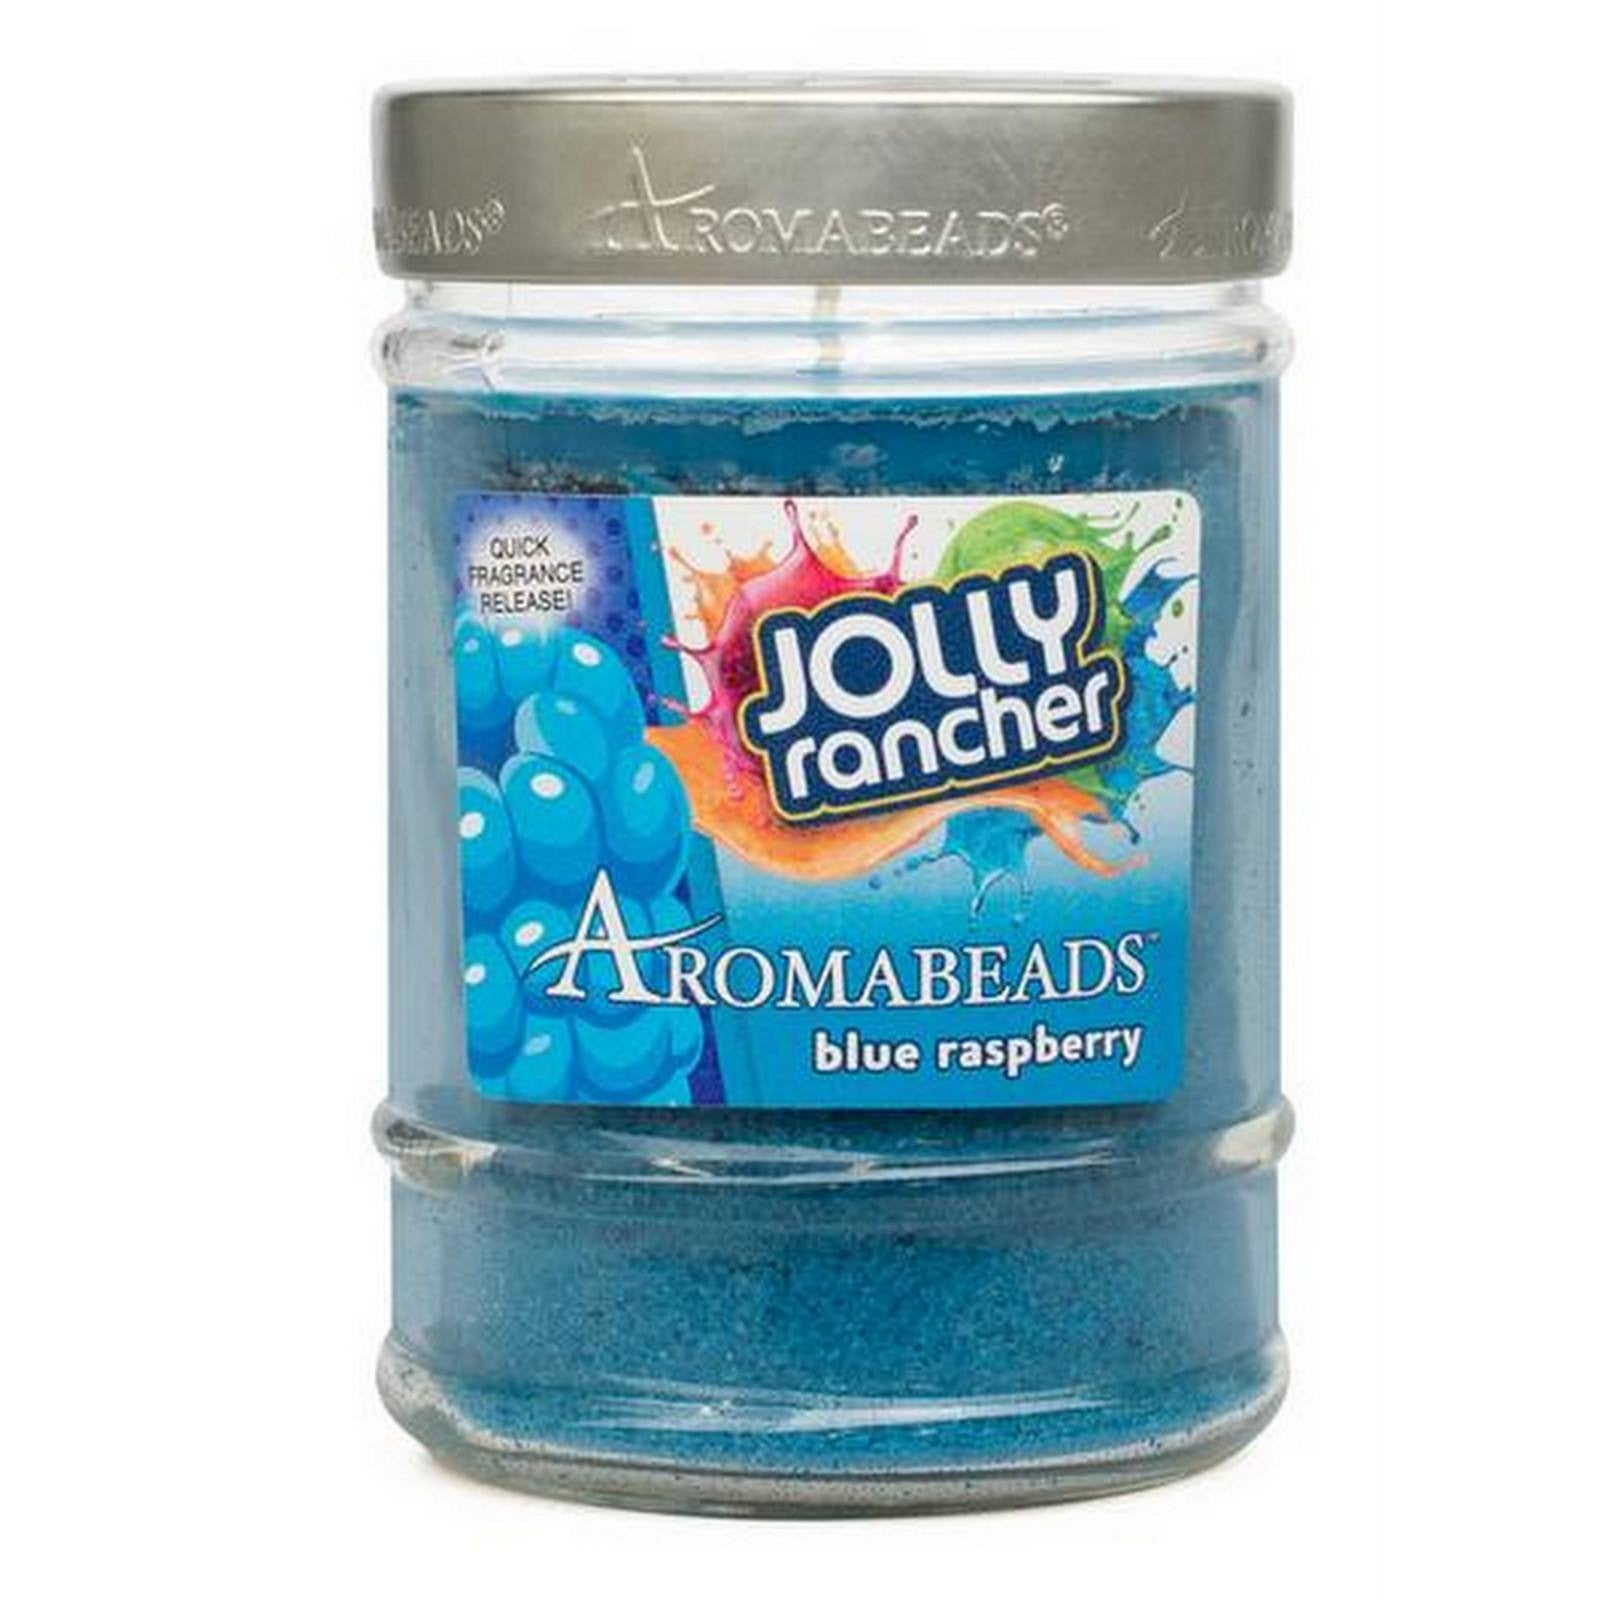 Aromabeads Jolly Rancher Blue Raspberry Scented Candle Aromabeads Candlemart.com $ 9.99